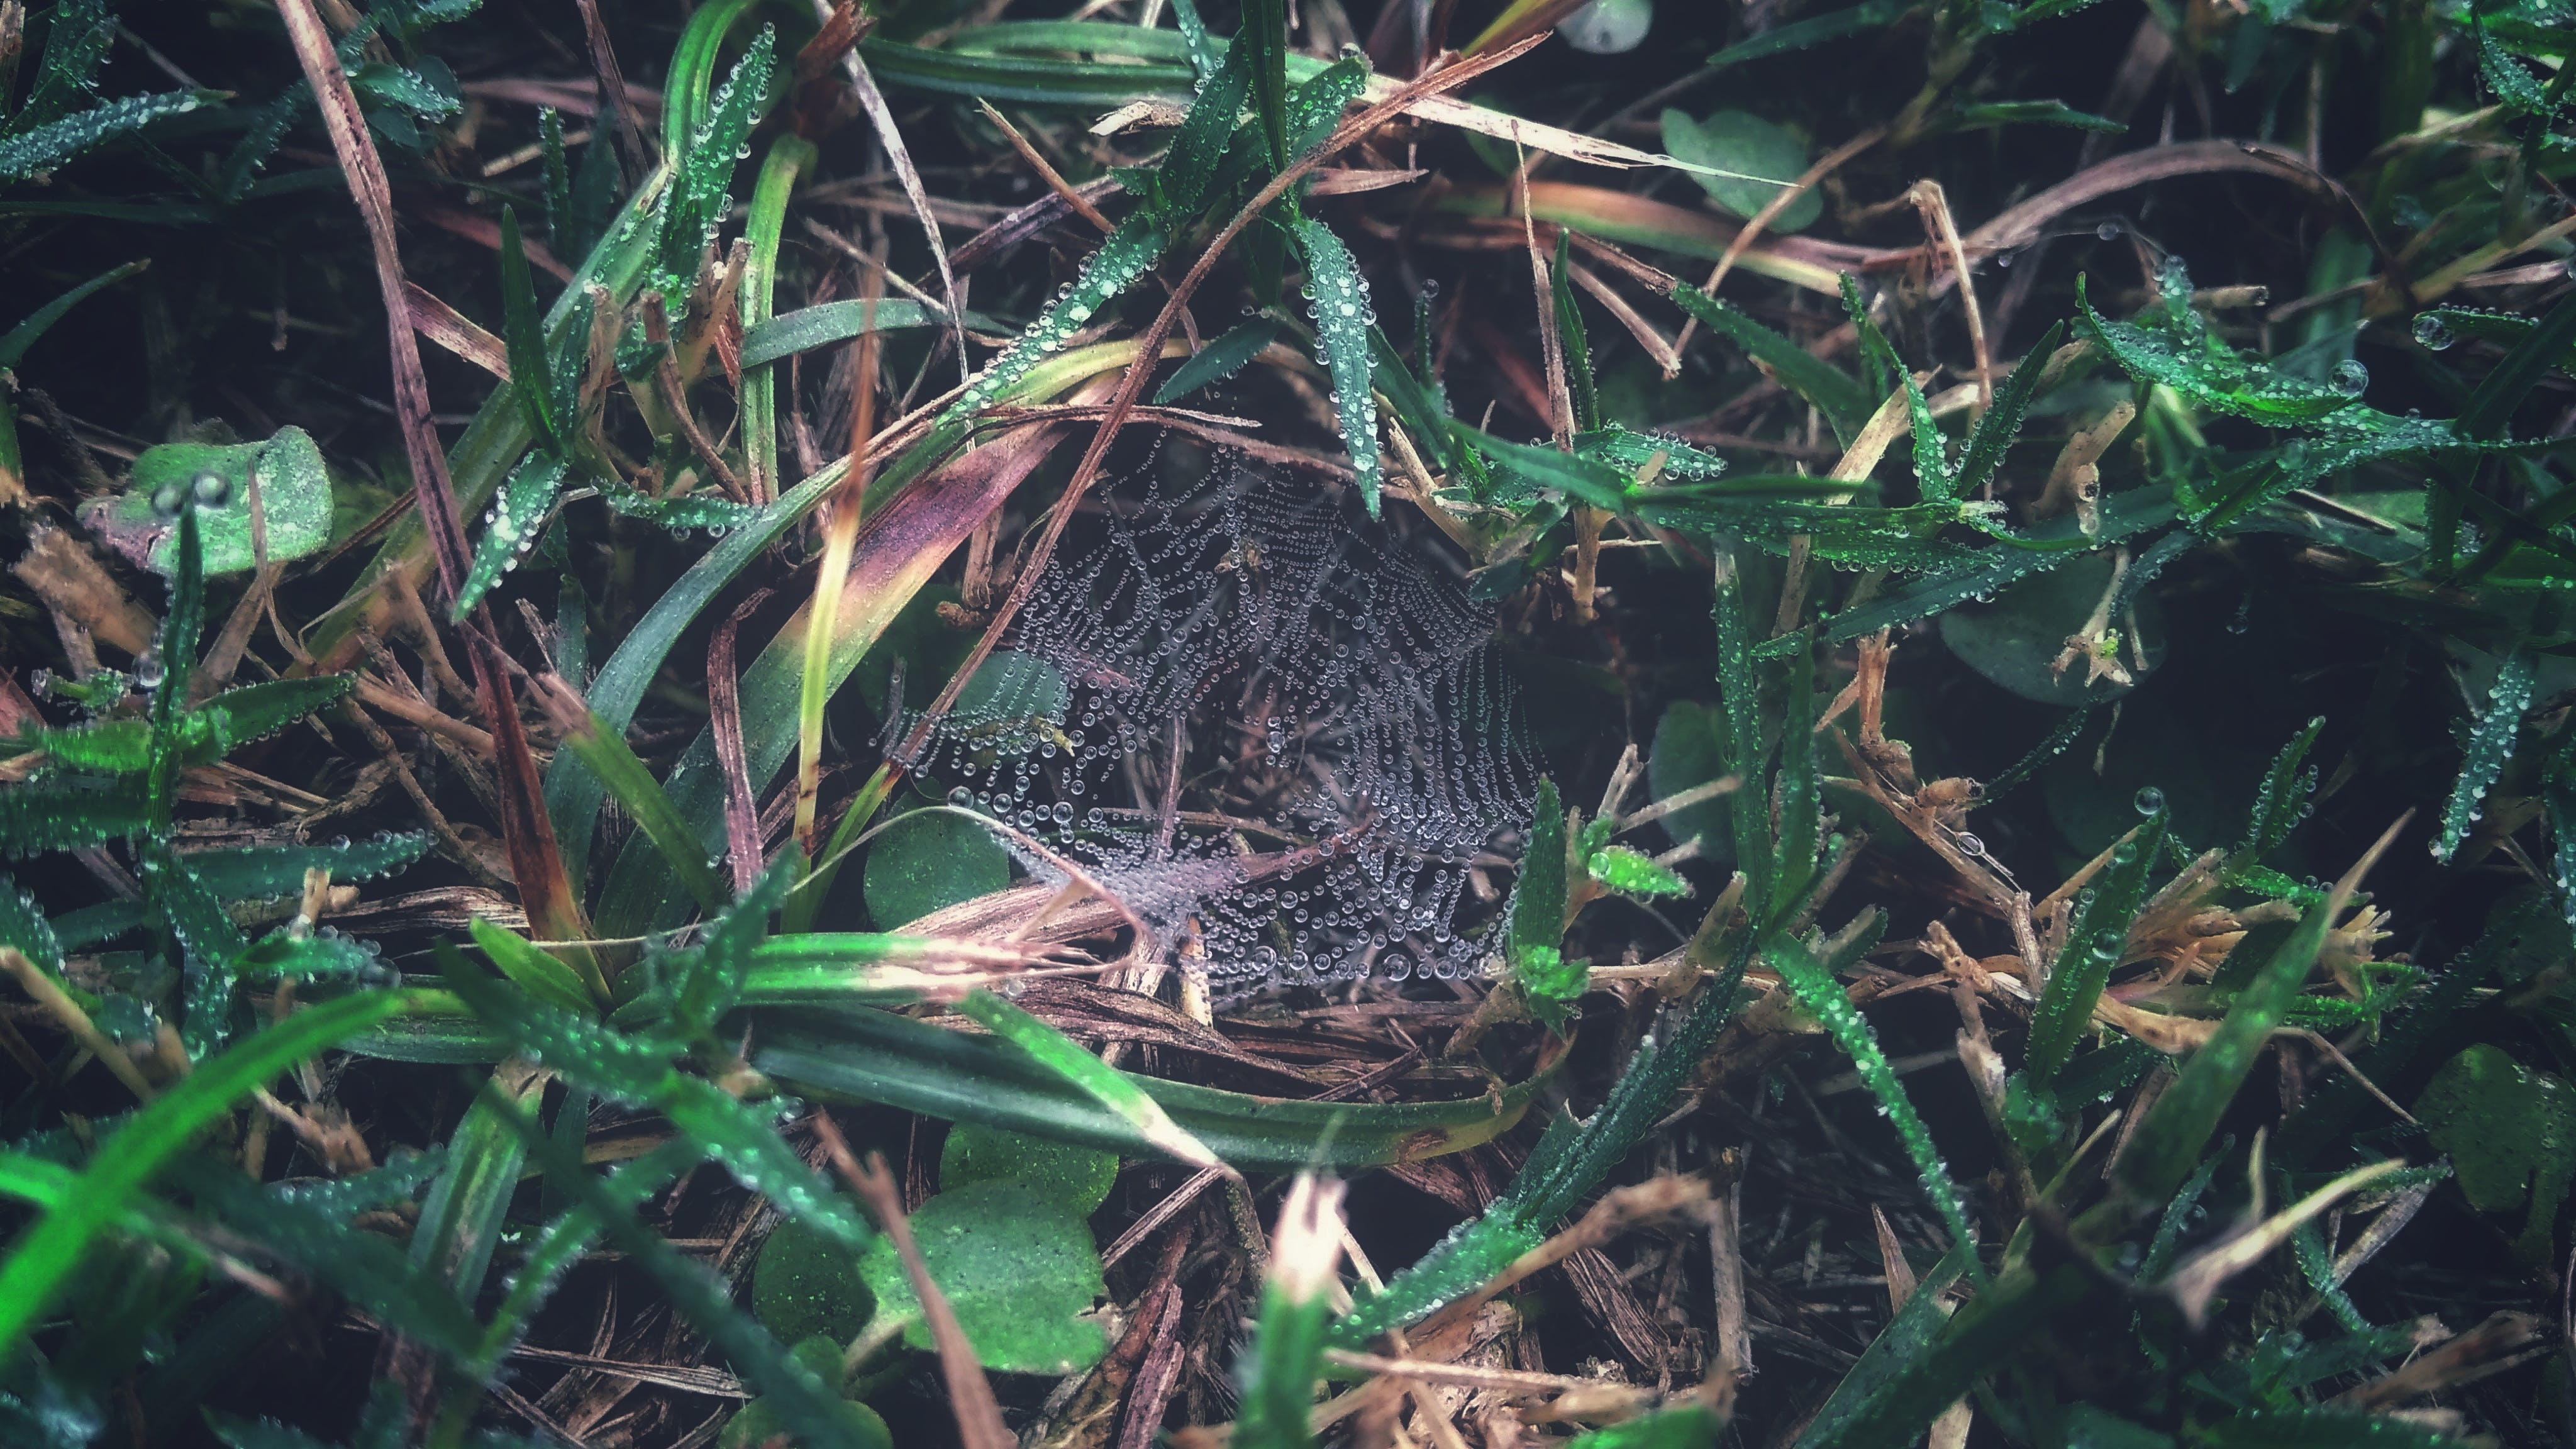 Spider Web on Grass With Dew Closeup Photography